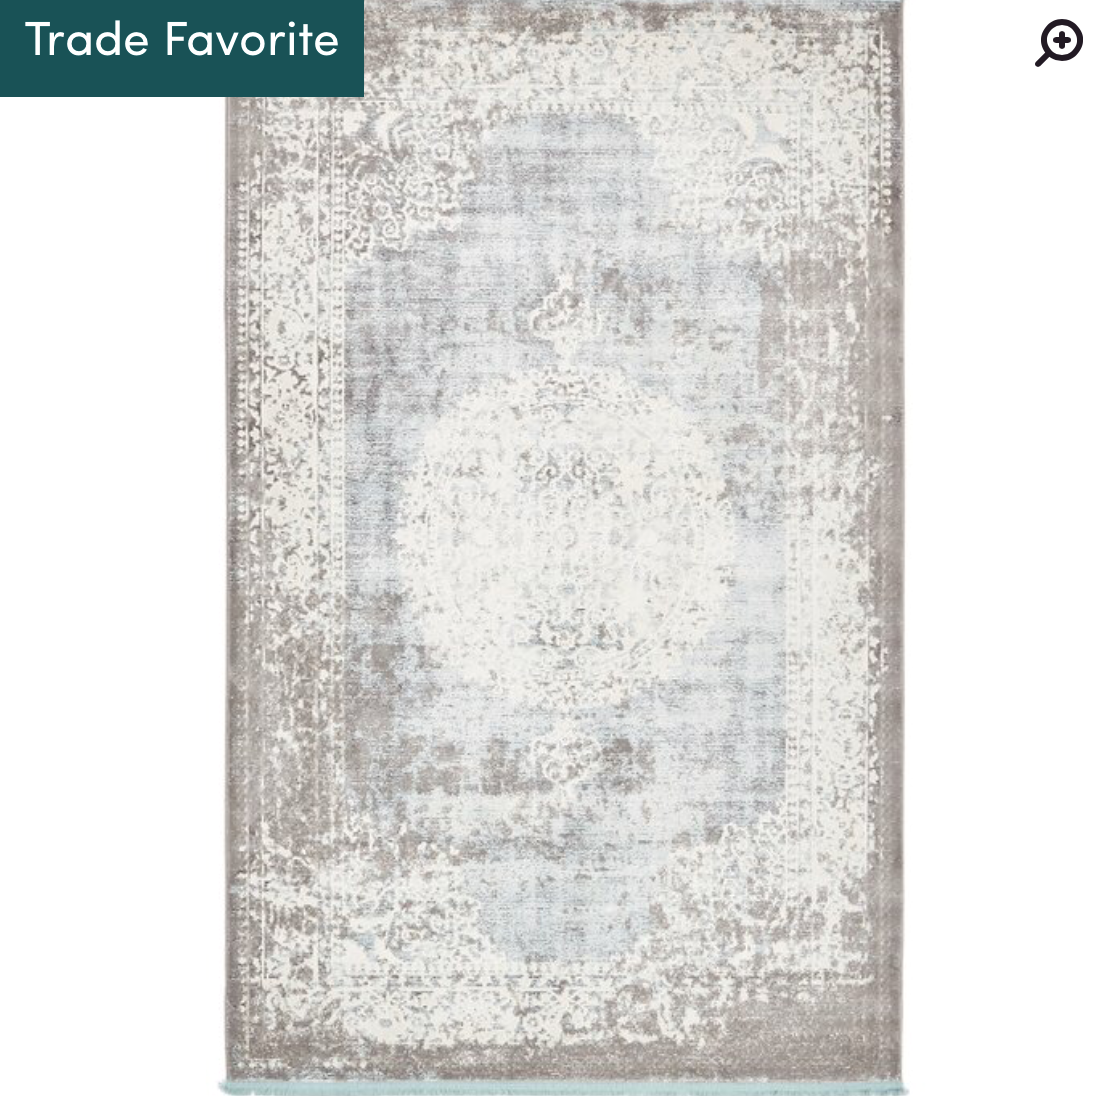 Twila Gray Rug (has some very light blue) -